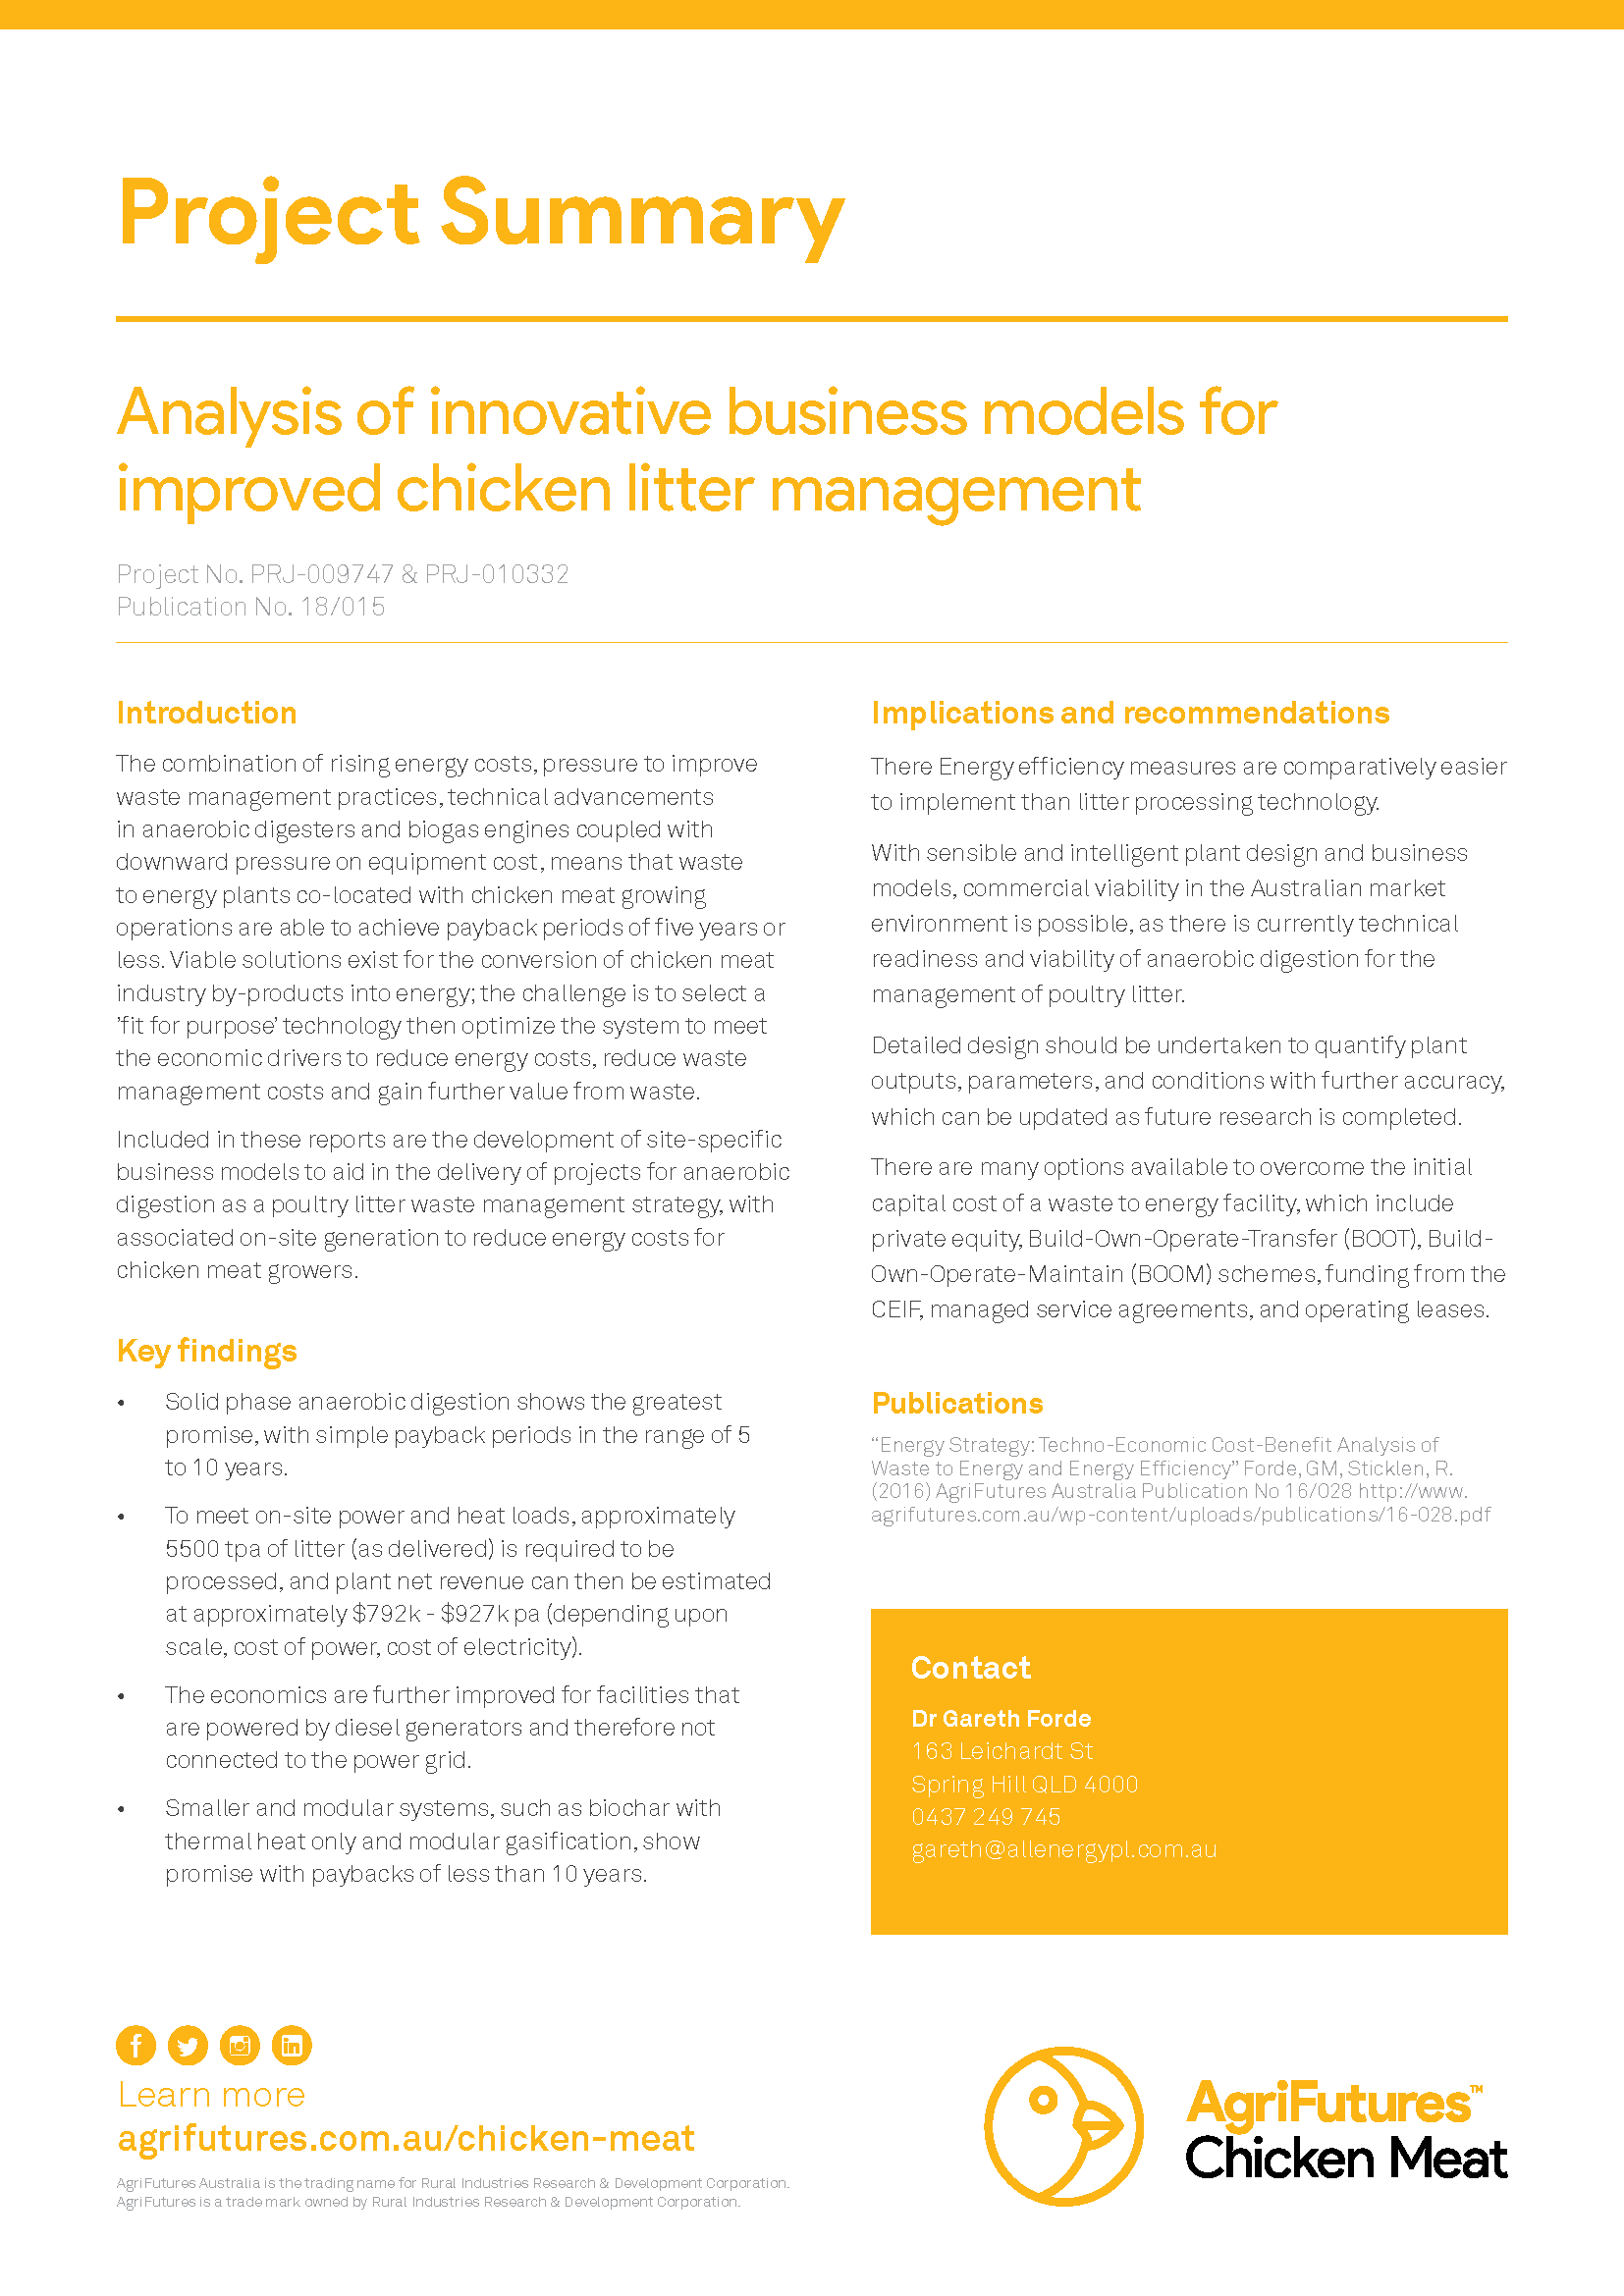 Analysis of innovative business models for  improved chicken litter management - image